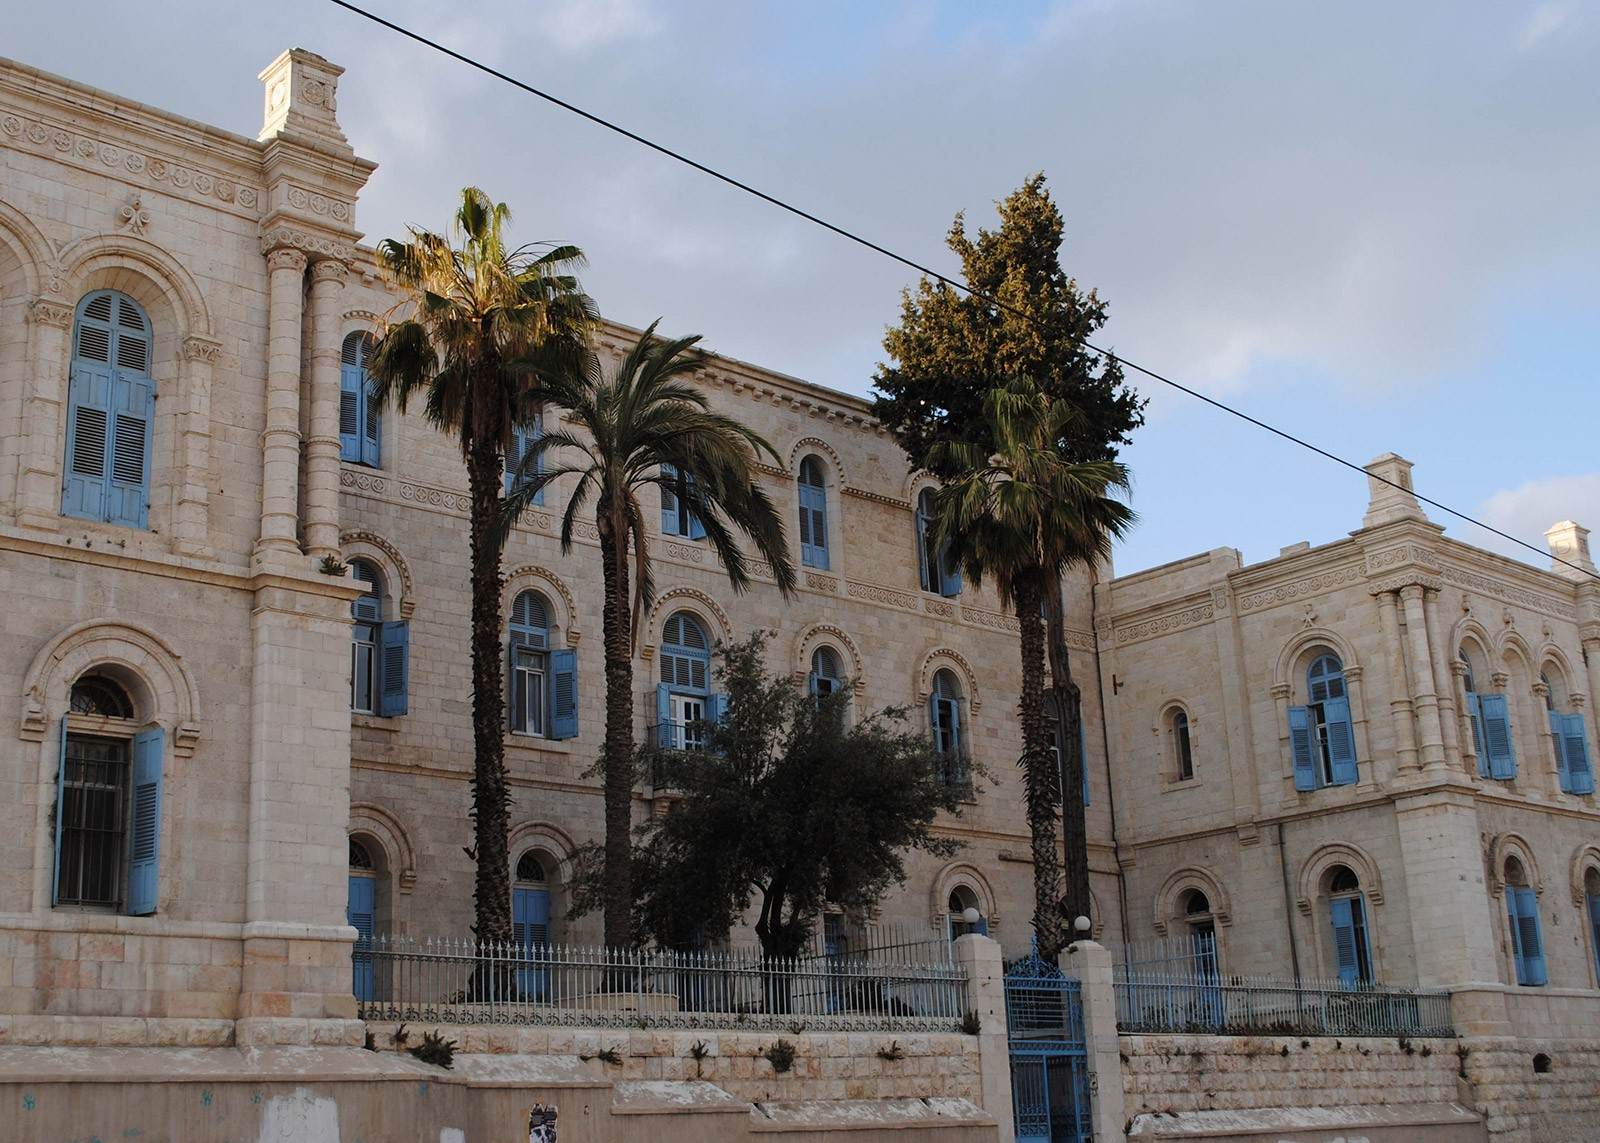 """Today's """"Saint Louis Hospital"""" in Jerusalem is the successor institution to the """"St. Ludwig"""" hospital which Arnold co-founded in October 1851 for patients of all religions and nationalities.  CC BY 2.0 / Photo: Paulina Zet, Vered Hasharon"""